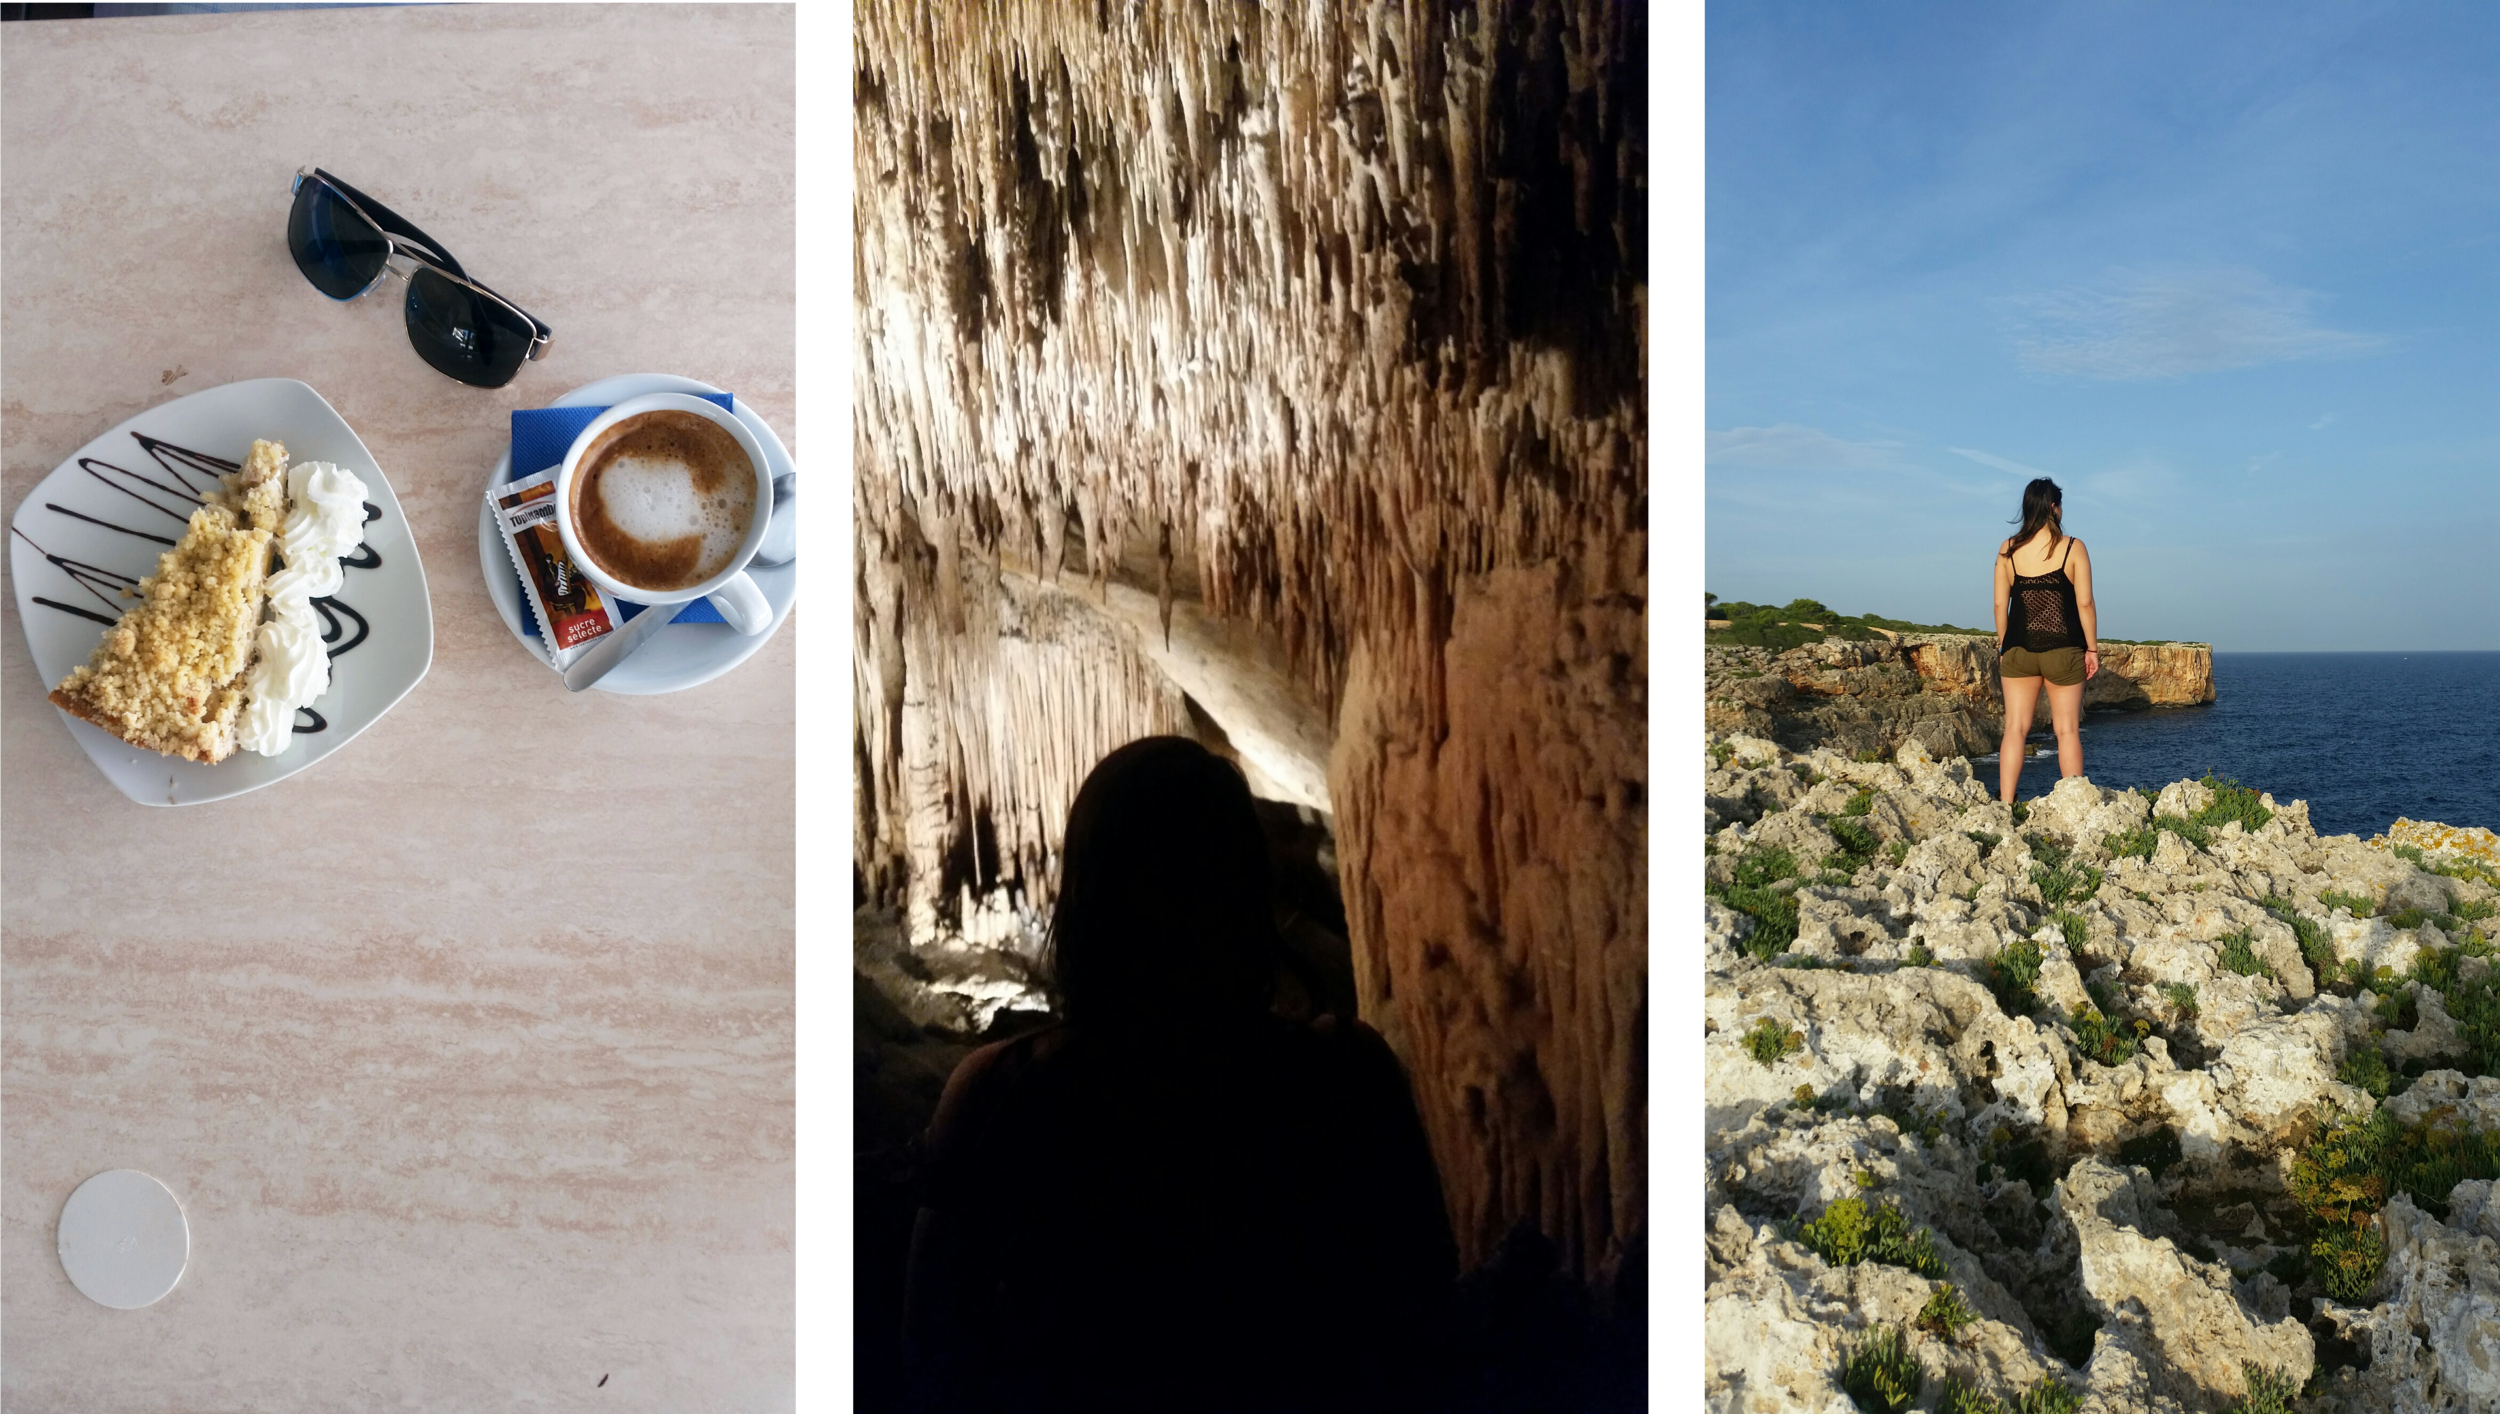 Coffee & Cake, the caves, and a random stop on the road.